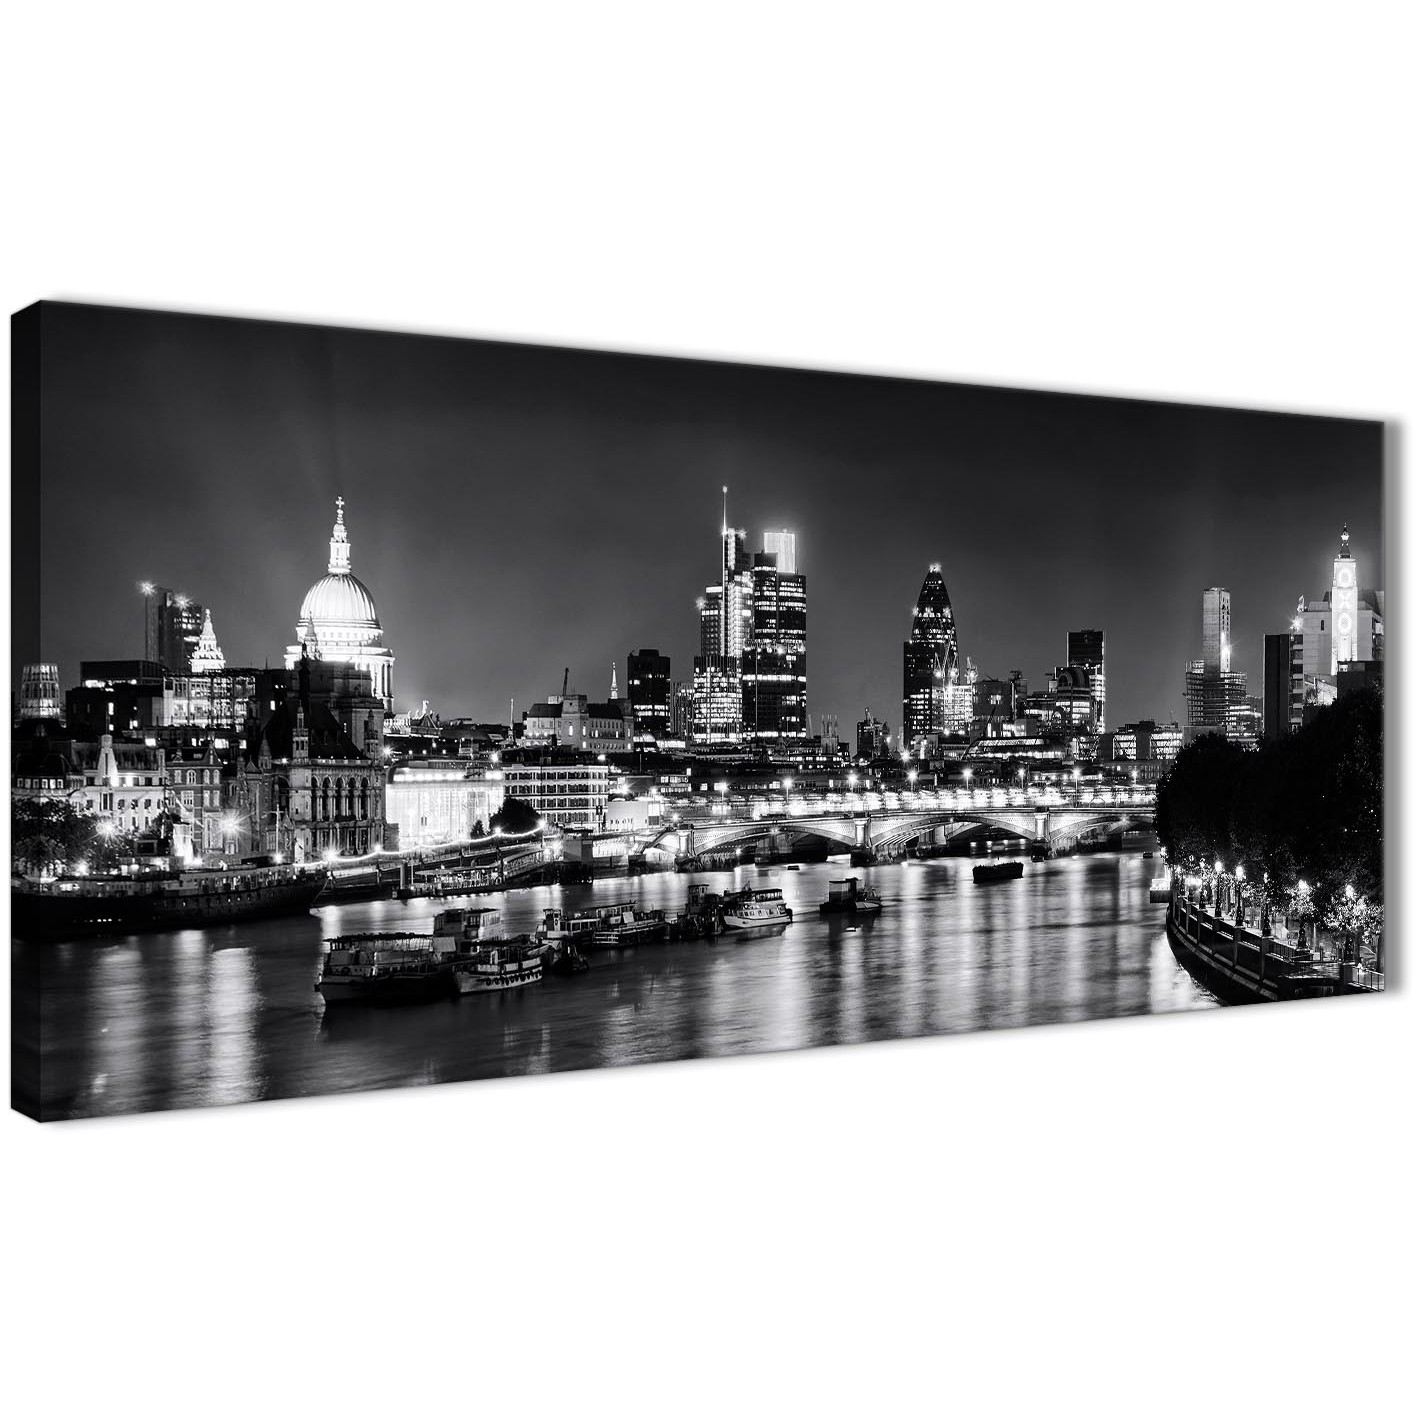 River Thames Skyline Of London Canvas Art Pictures – Landscape Inside Newest Canvas Wall Art Of London (View 15 of 15)